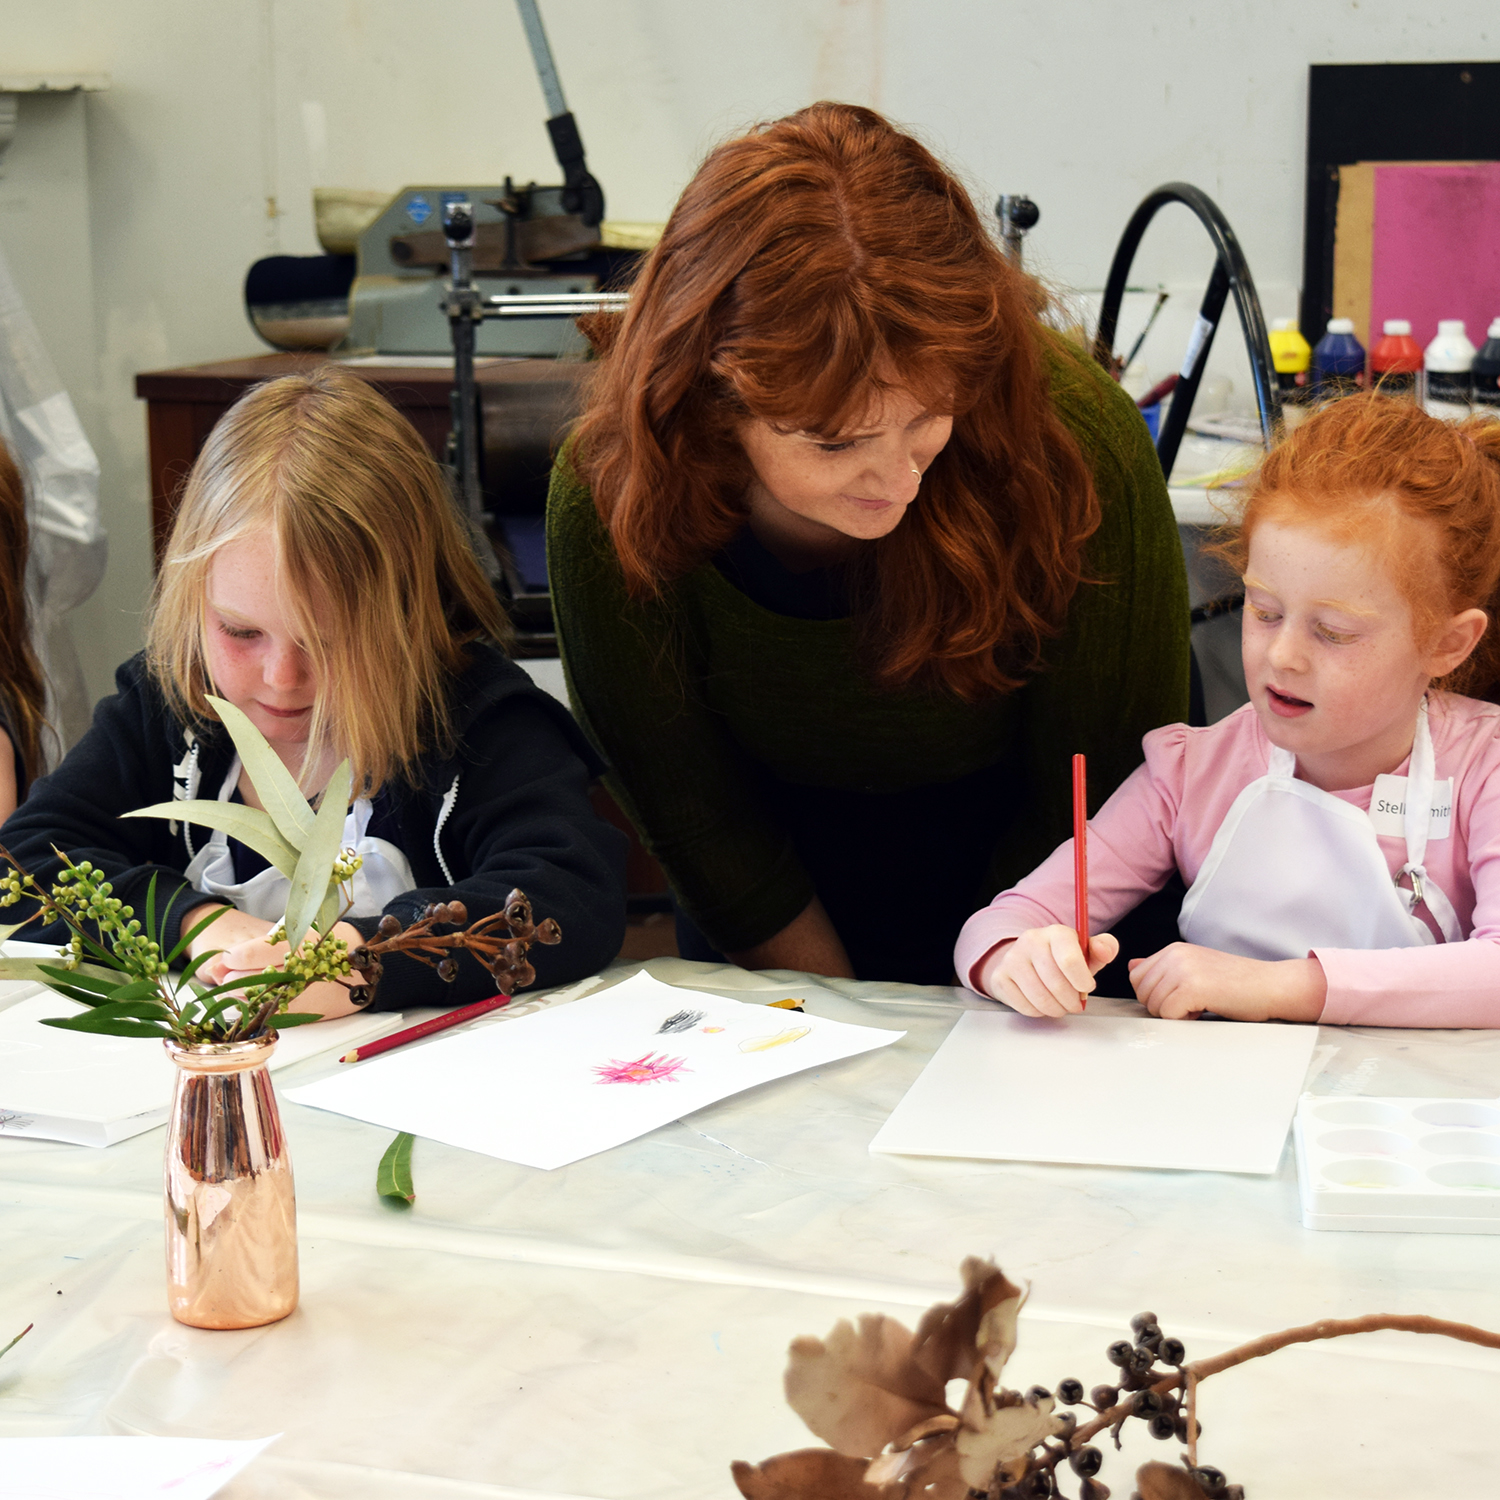 School Holiday & KIDS Workshops - As well as weekend and afterschool workshops, MAC presents workshops every school holidays for children of all ages.